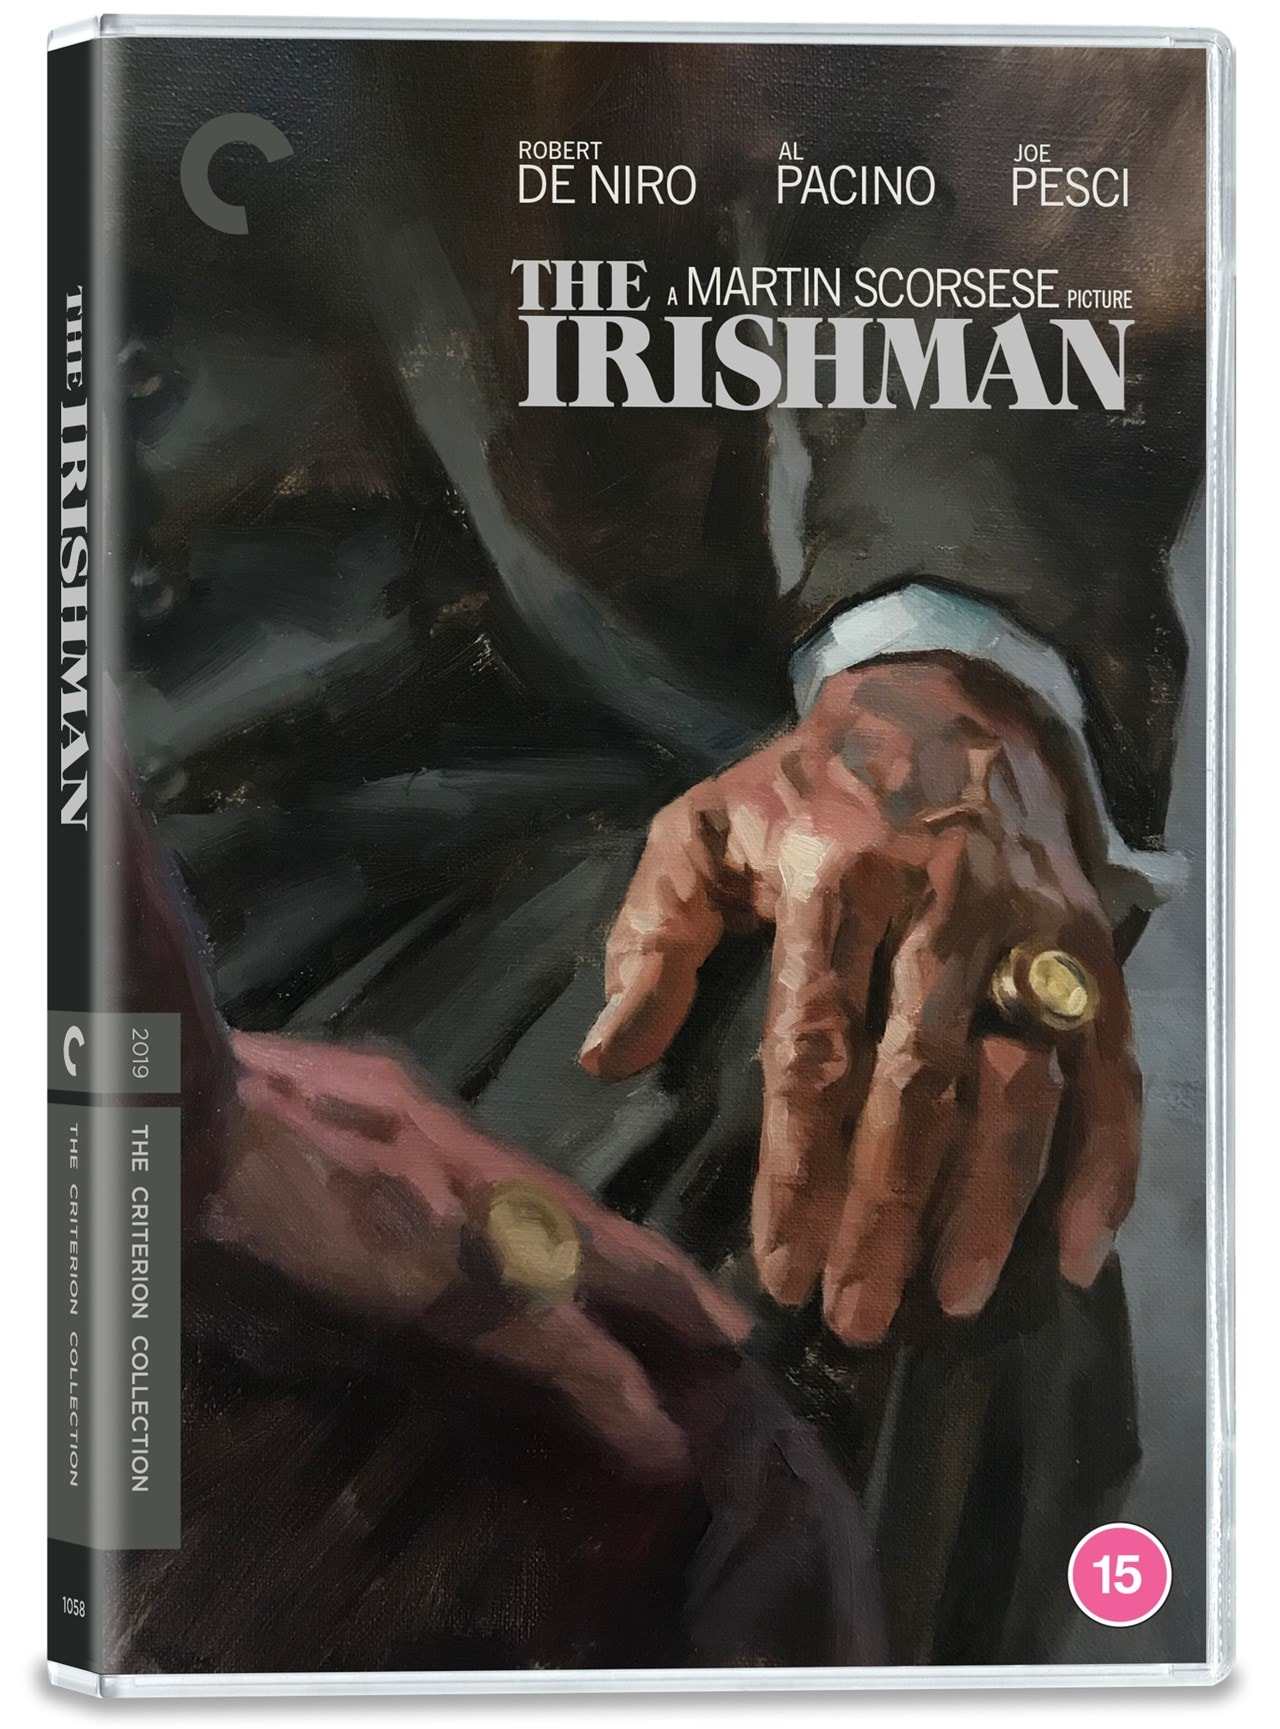 The Irishman - The Criterion Collection - 2